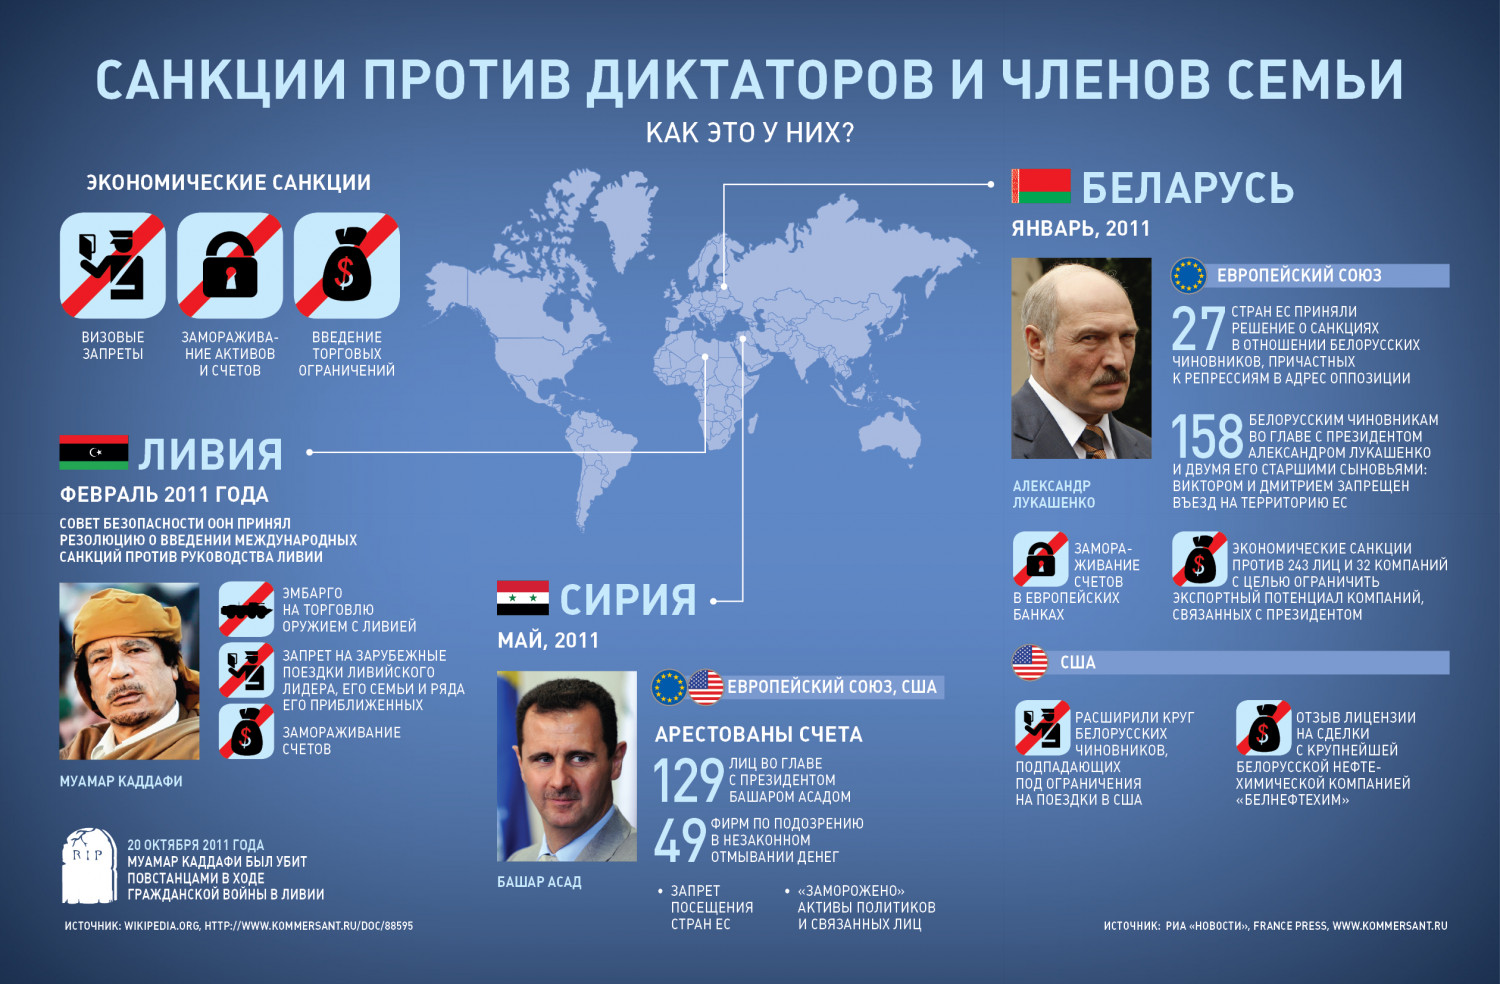 Sanctions Against Dictators and Their Families Infographic